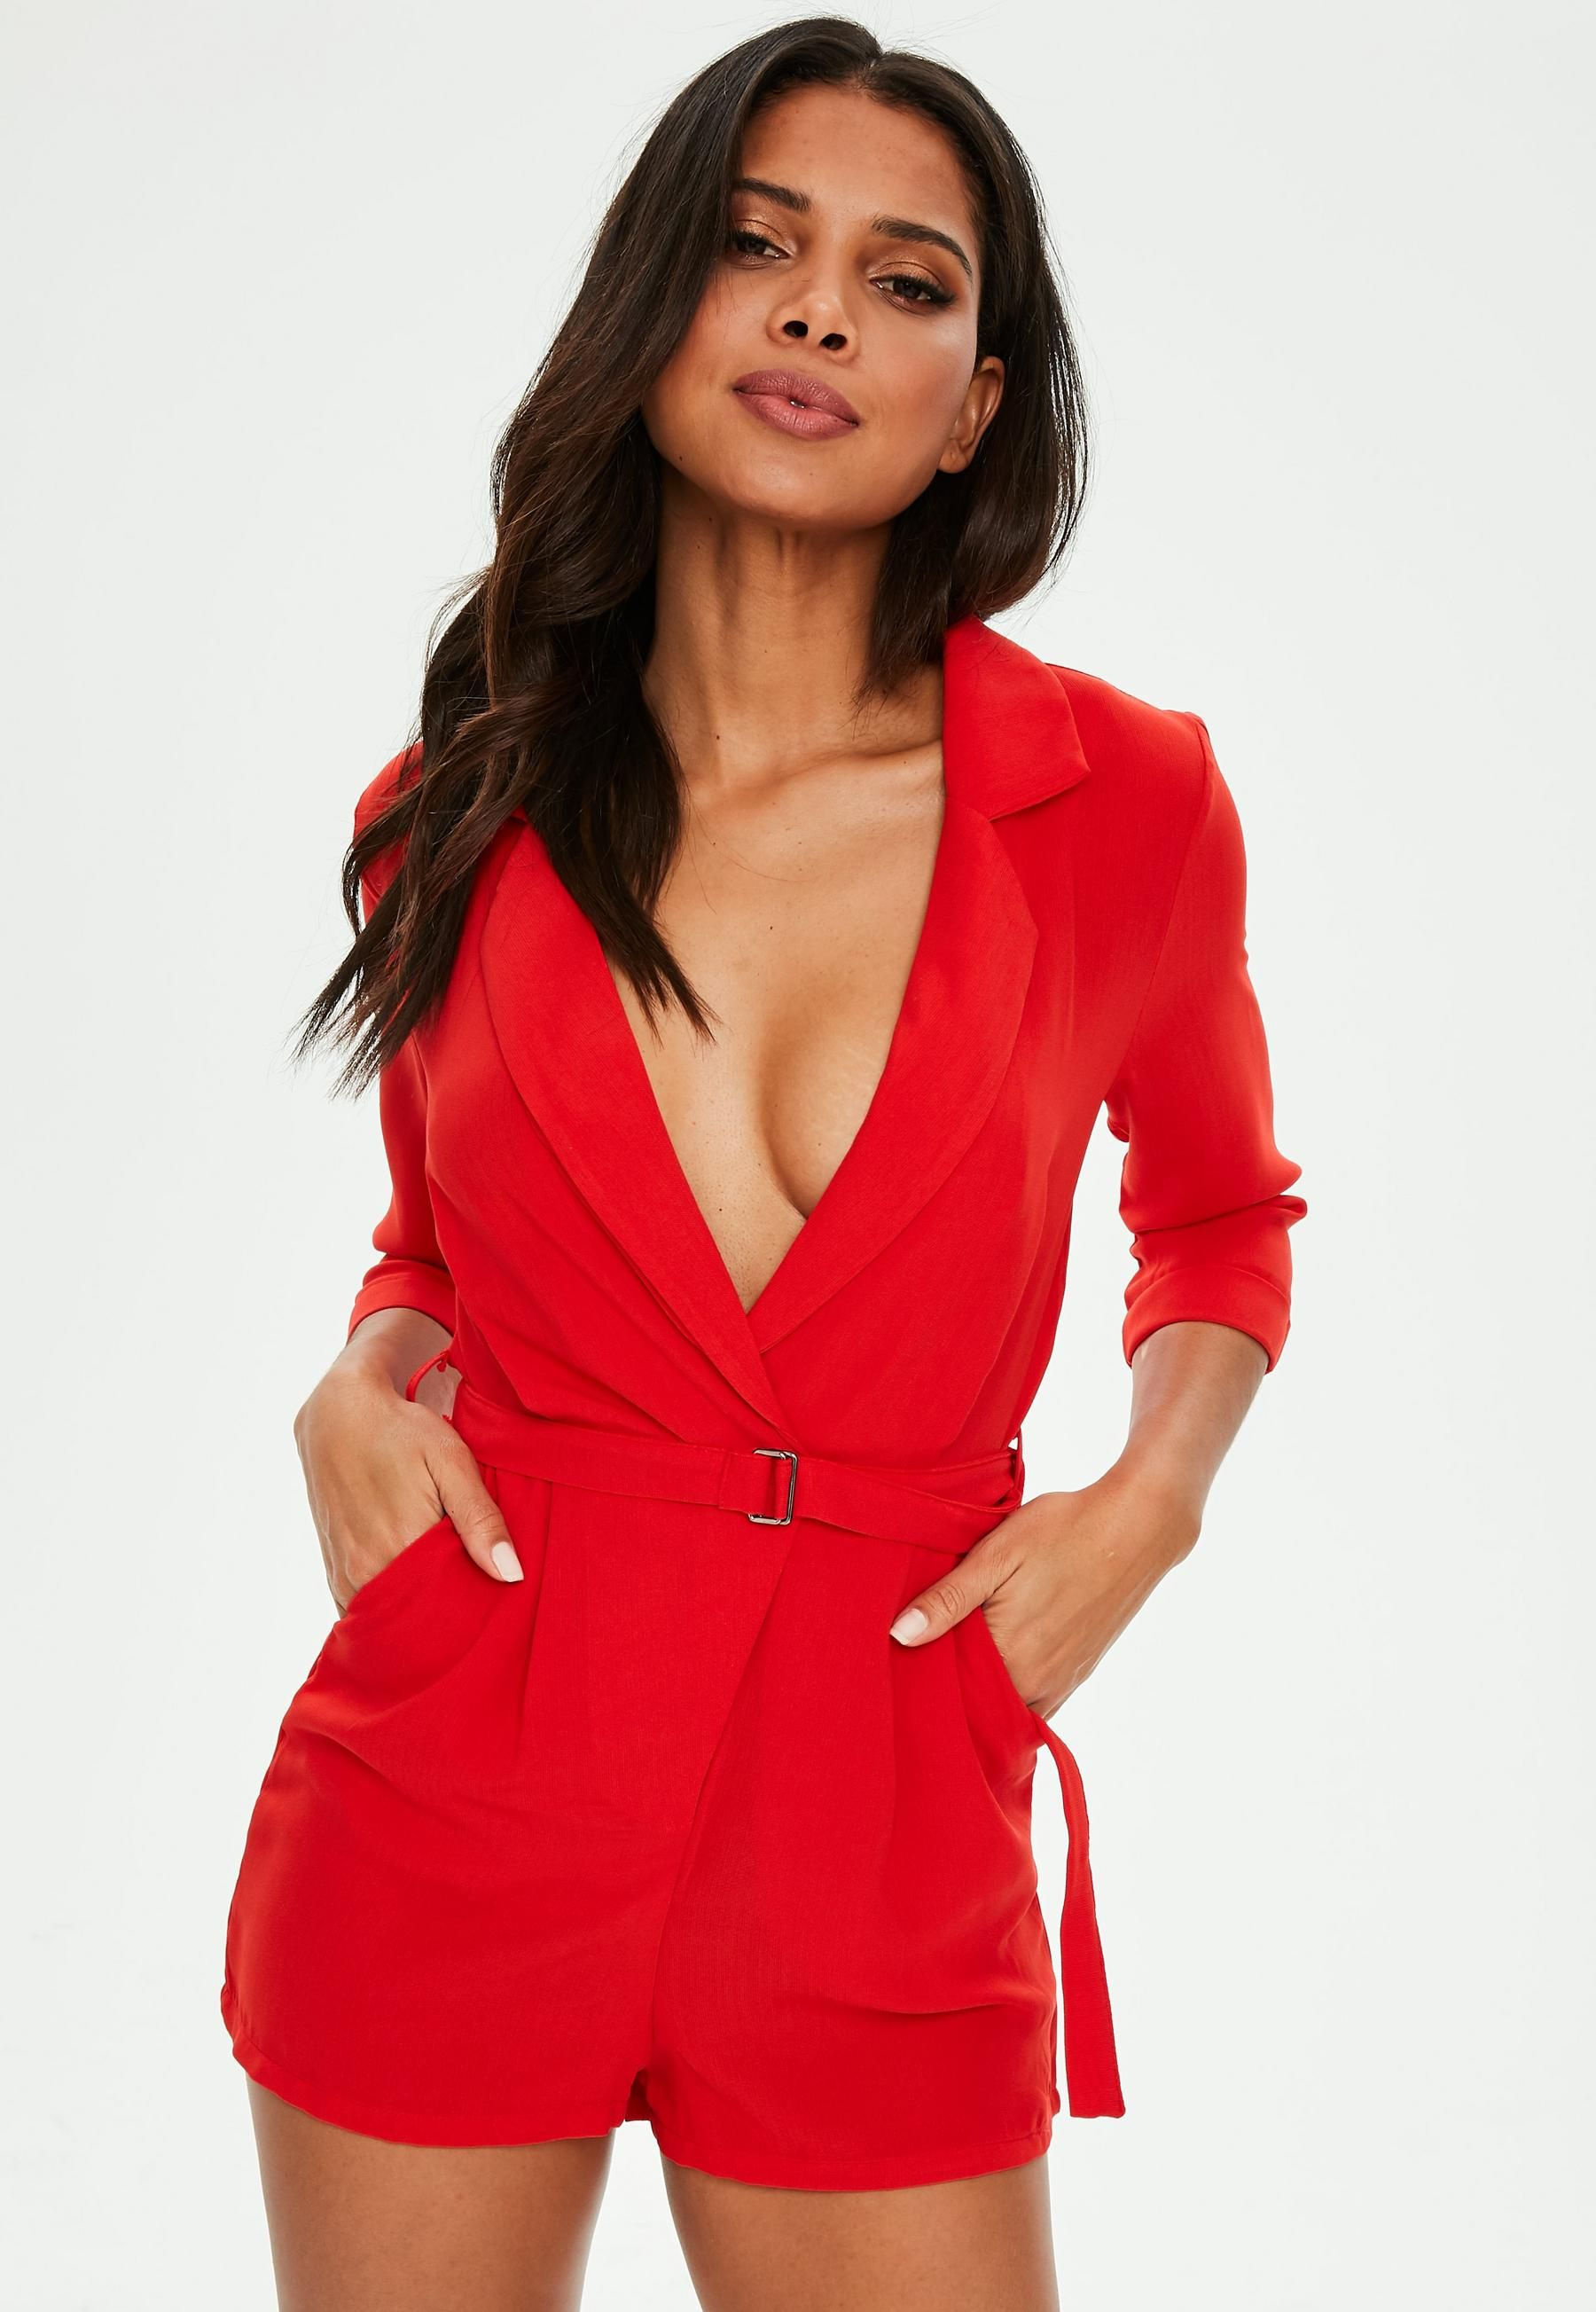 best selection of 2019 buy real complete range of articles Red Wrap Blazer Playsuit | Missguided Australia | Ruby Biond ...